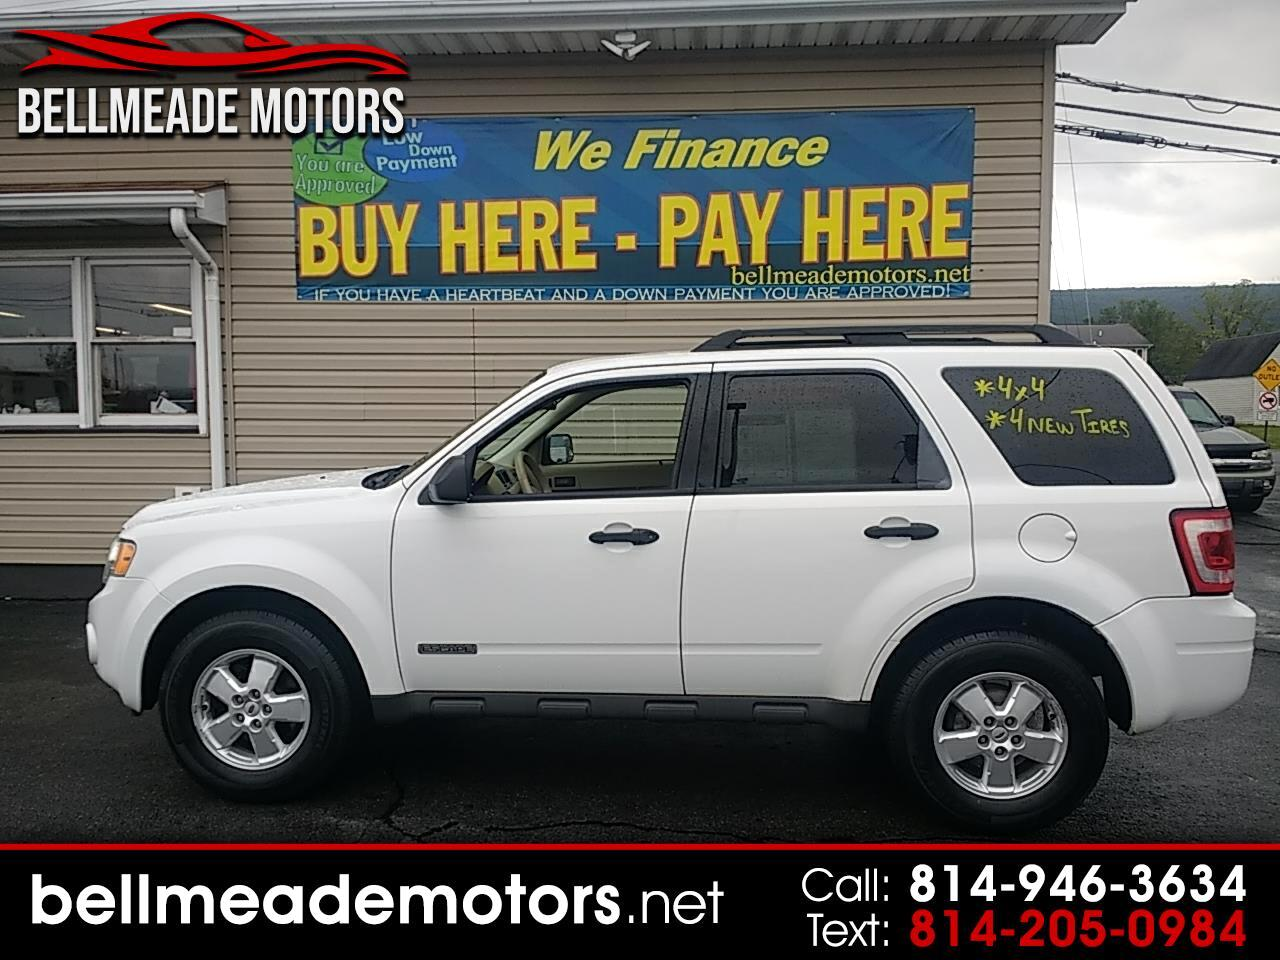 2008 Ford Escape 4WD 4dr I4 Auto XLT